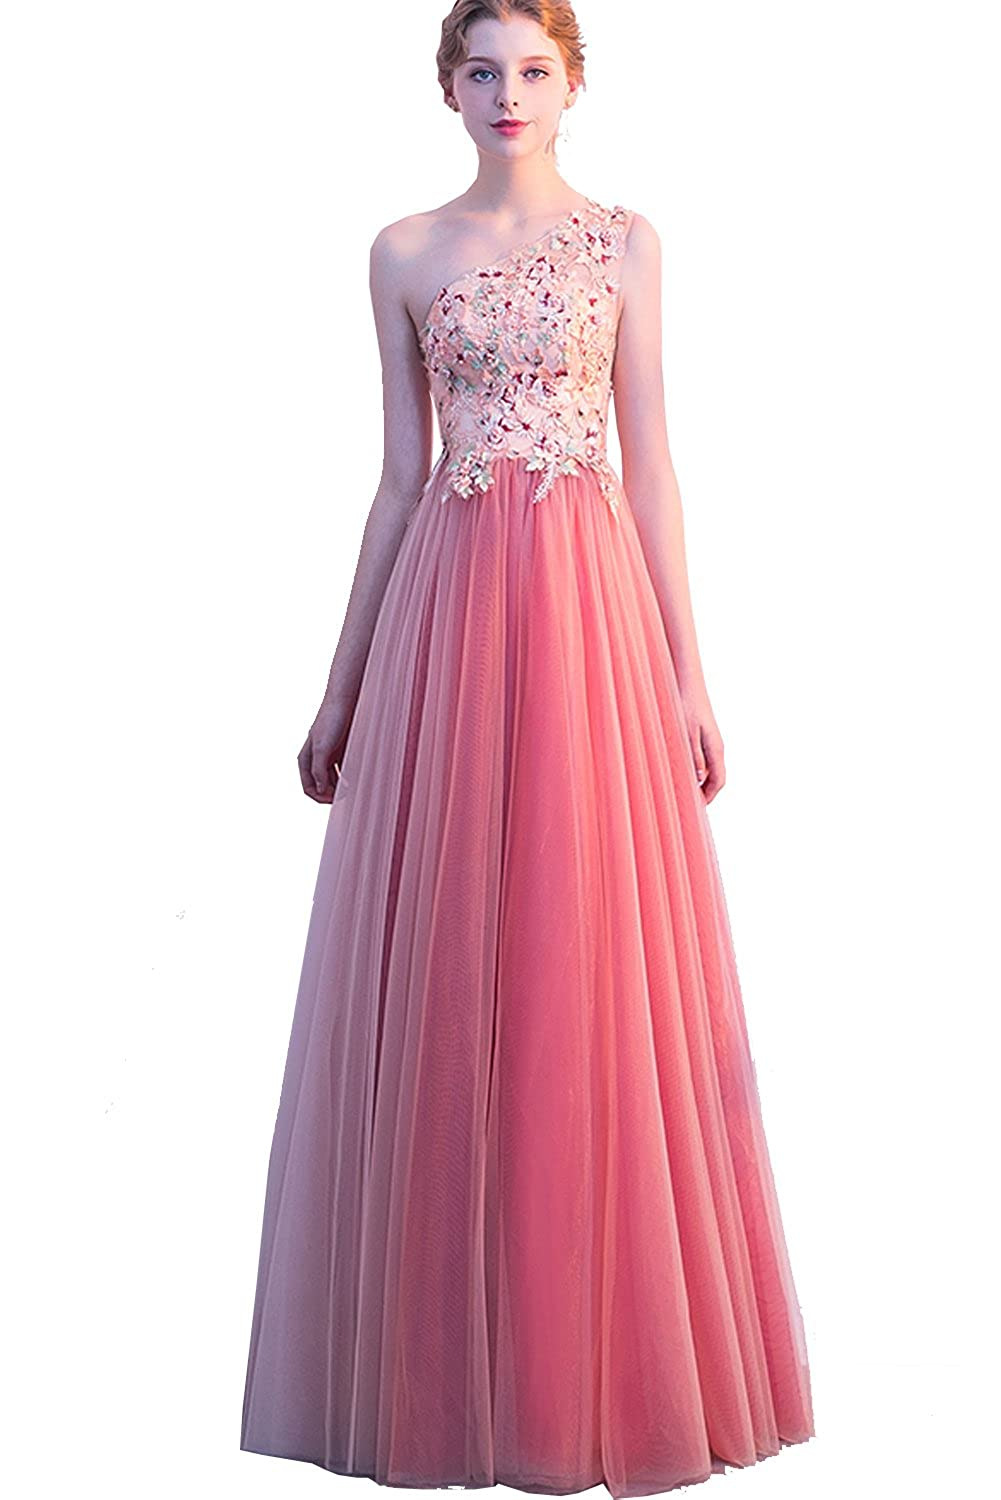 7a7230dbcc15 Women's Floral Applique One Shoulder Long Prom Dresses Coral Formal Gowns  2019 at Amazon Women's Clothing store: